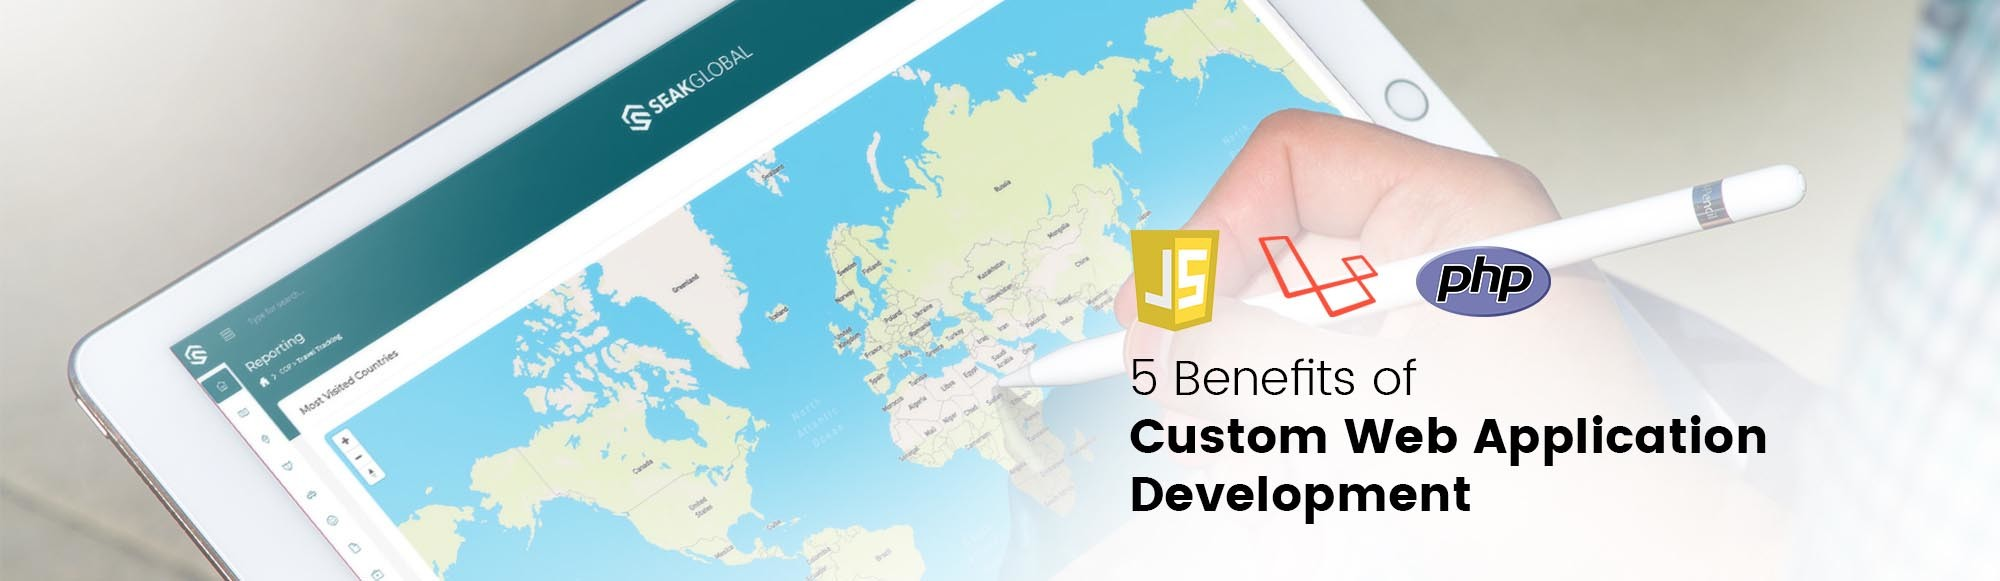 Benefits of Custom Web Application Development